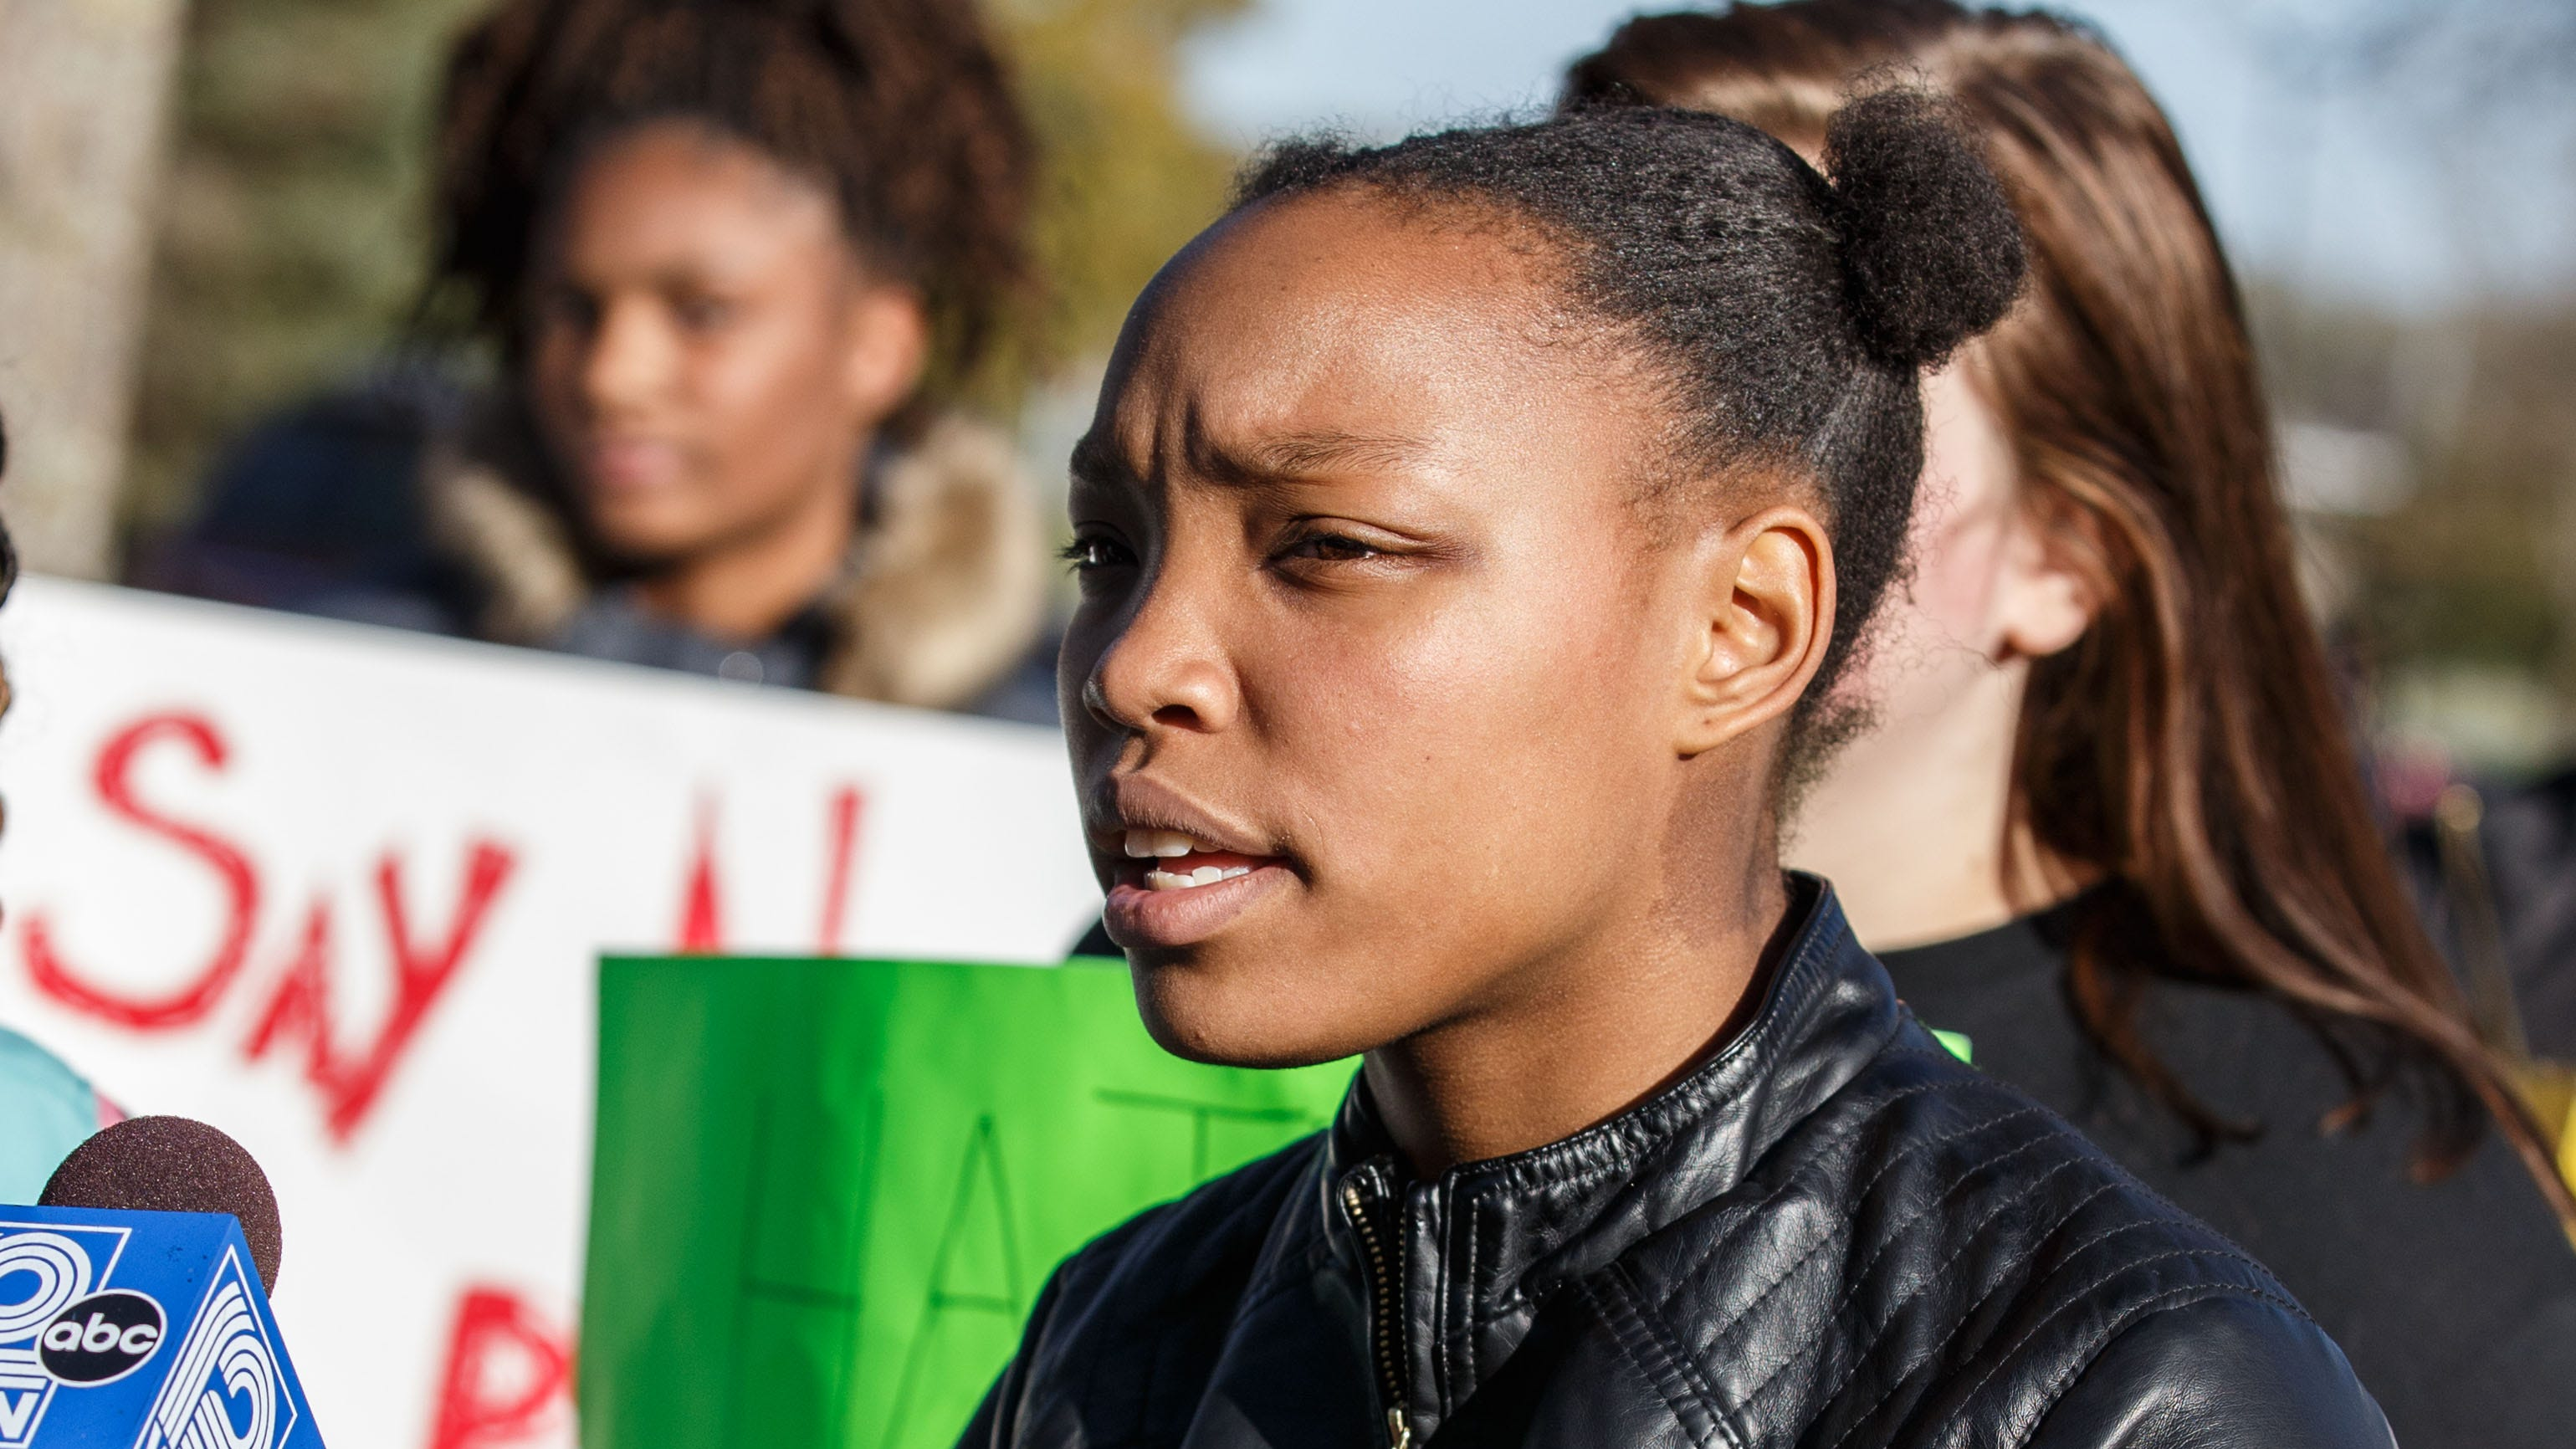 Students and supporters rally against reported racial slurs at Greendale High School